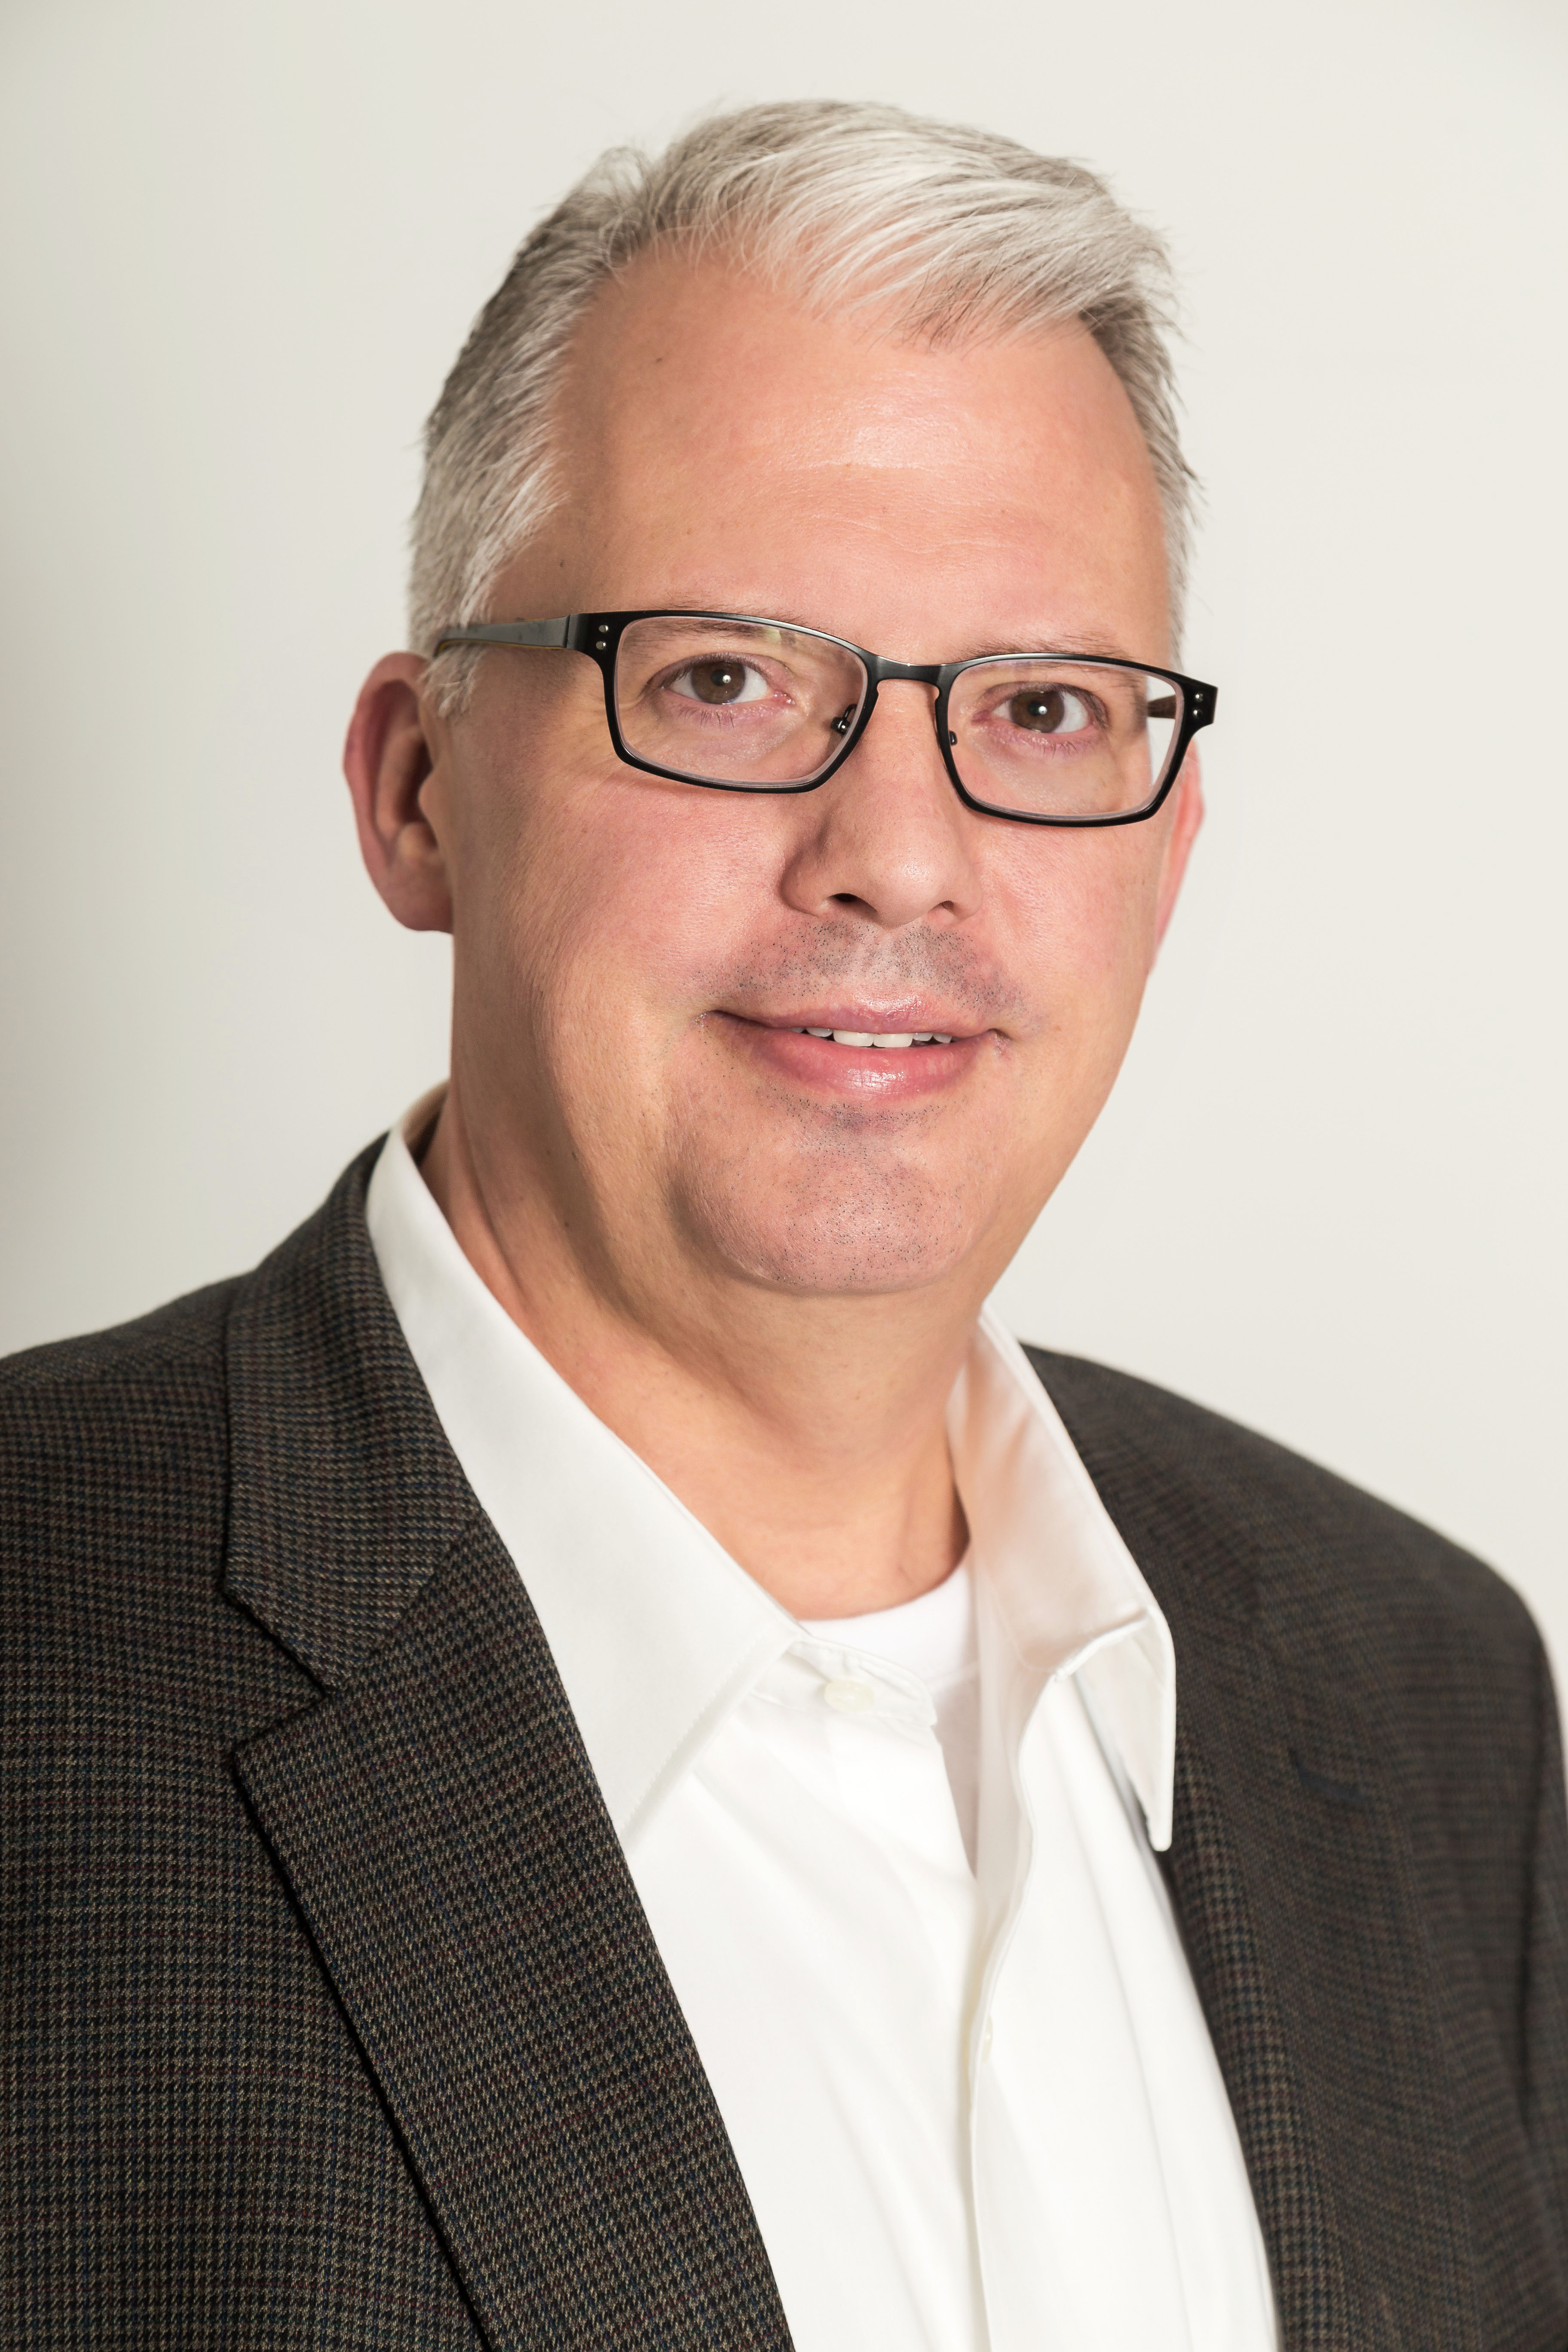 Michael Shaw named new Chief Operating Officer of Markwins Beauty Brands (Photo: Business Wire)